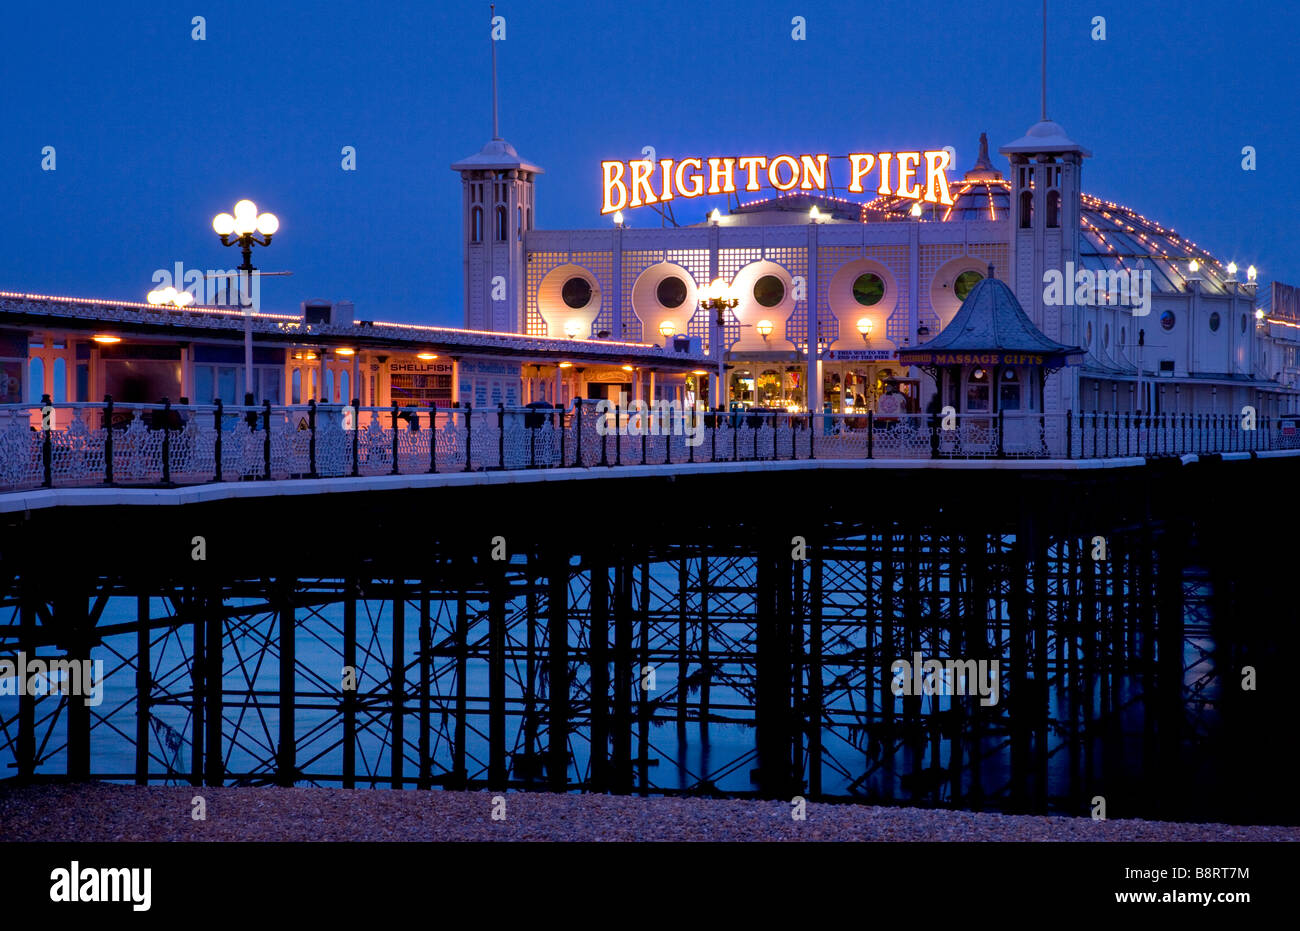 Palace Pier at night, Brighton, East Sussex, England. - Stock Image